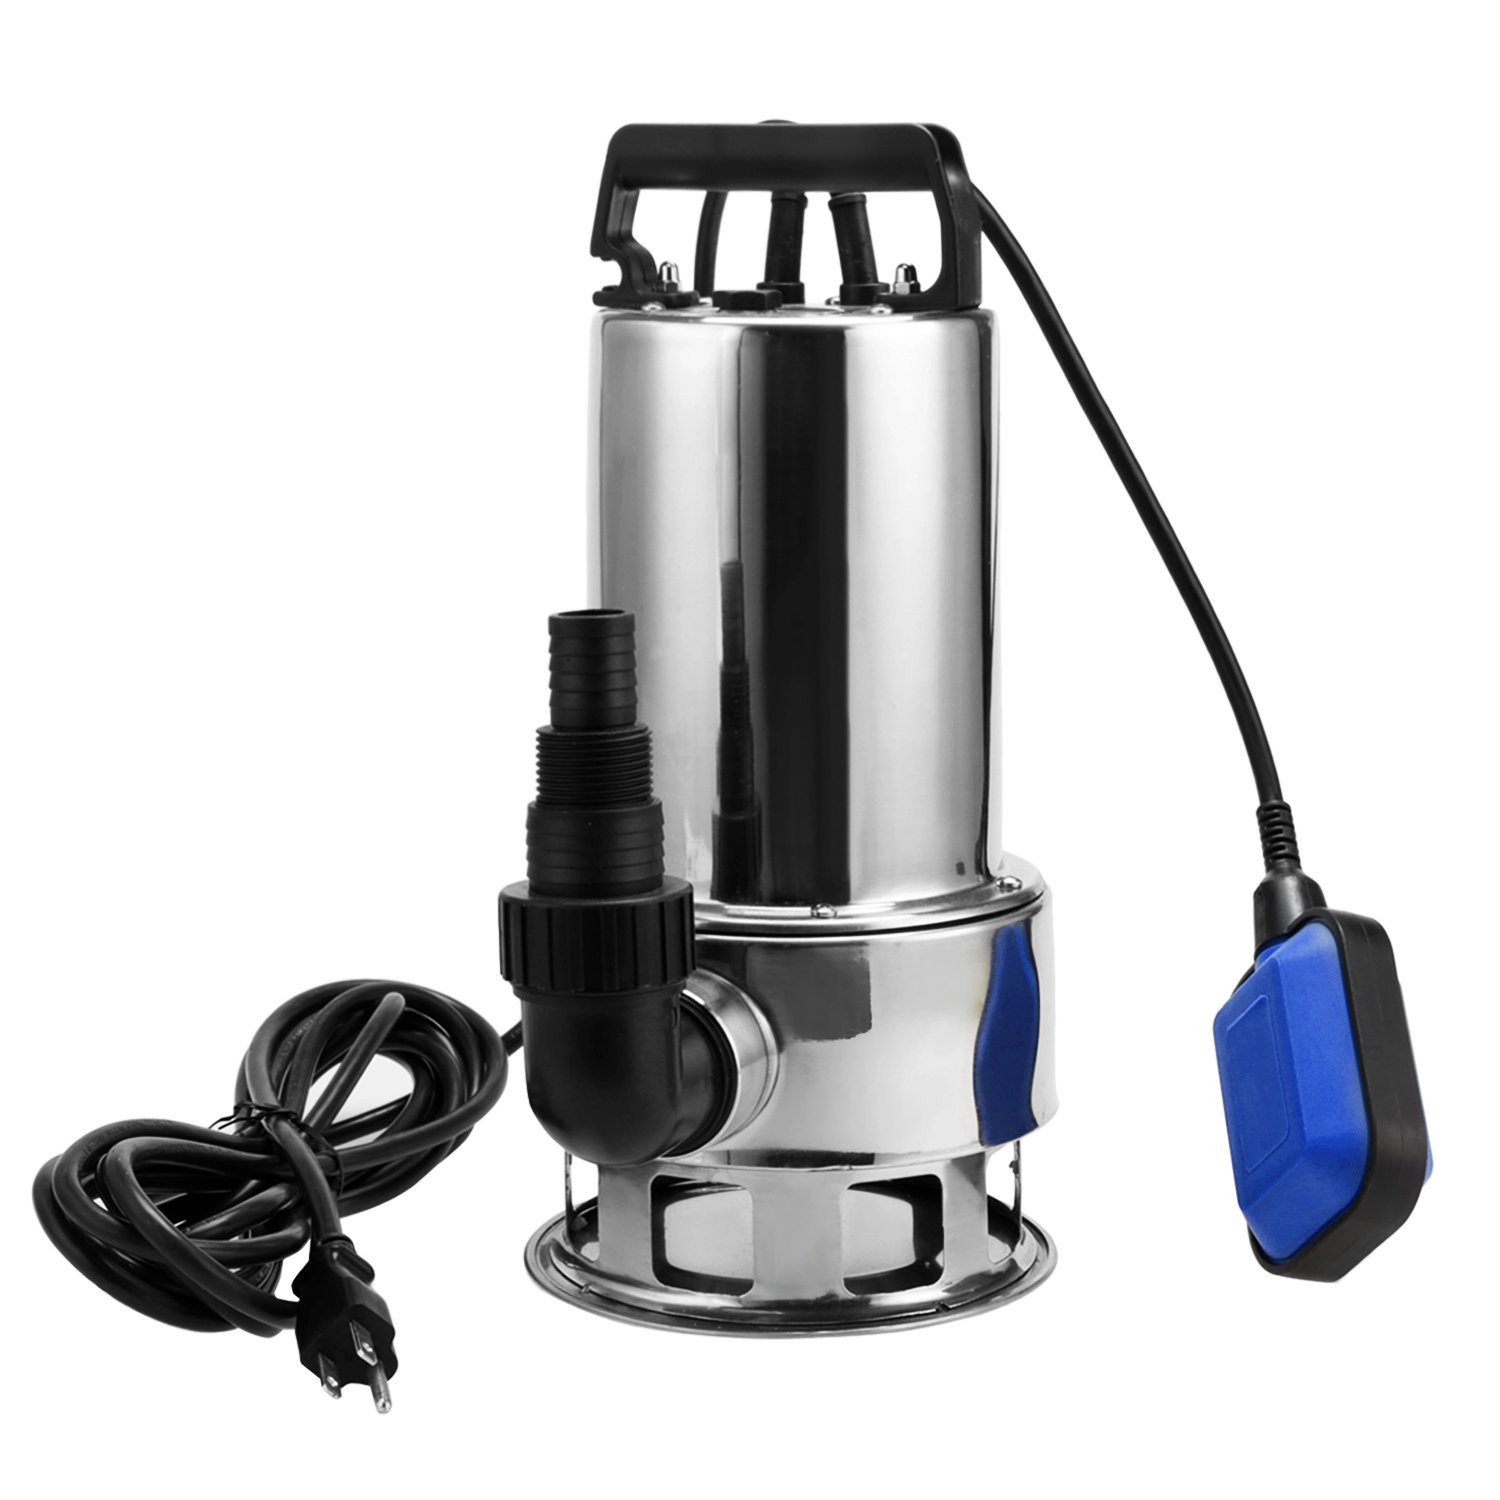 1.5HP Stainless Steel Submersible Water Pump Clean/Dirty Water Sump Pump with 15ft Cable and Float Switch